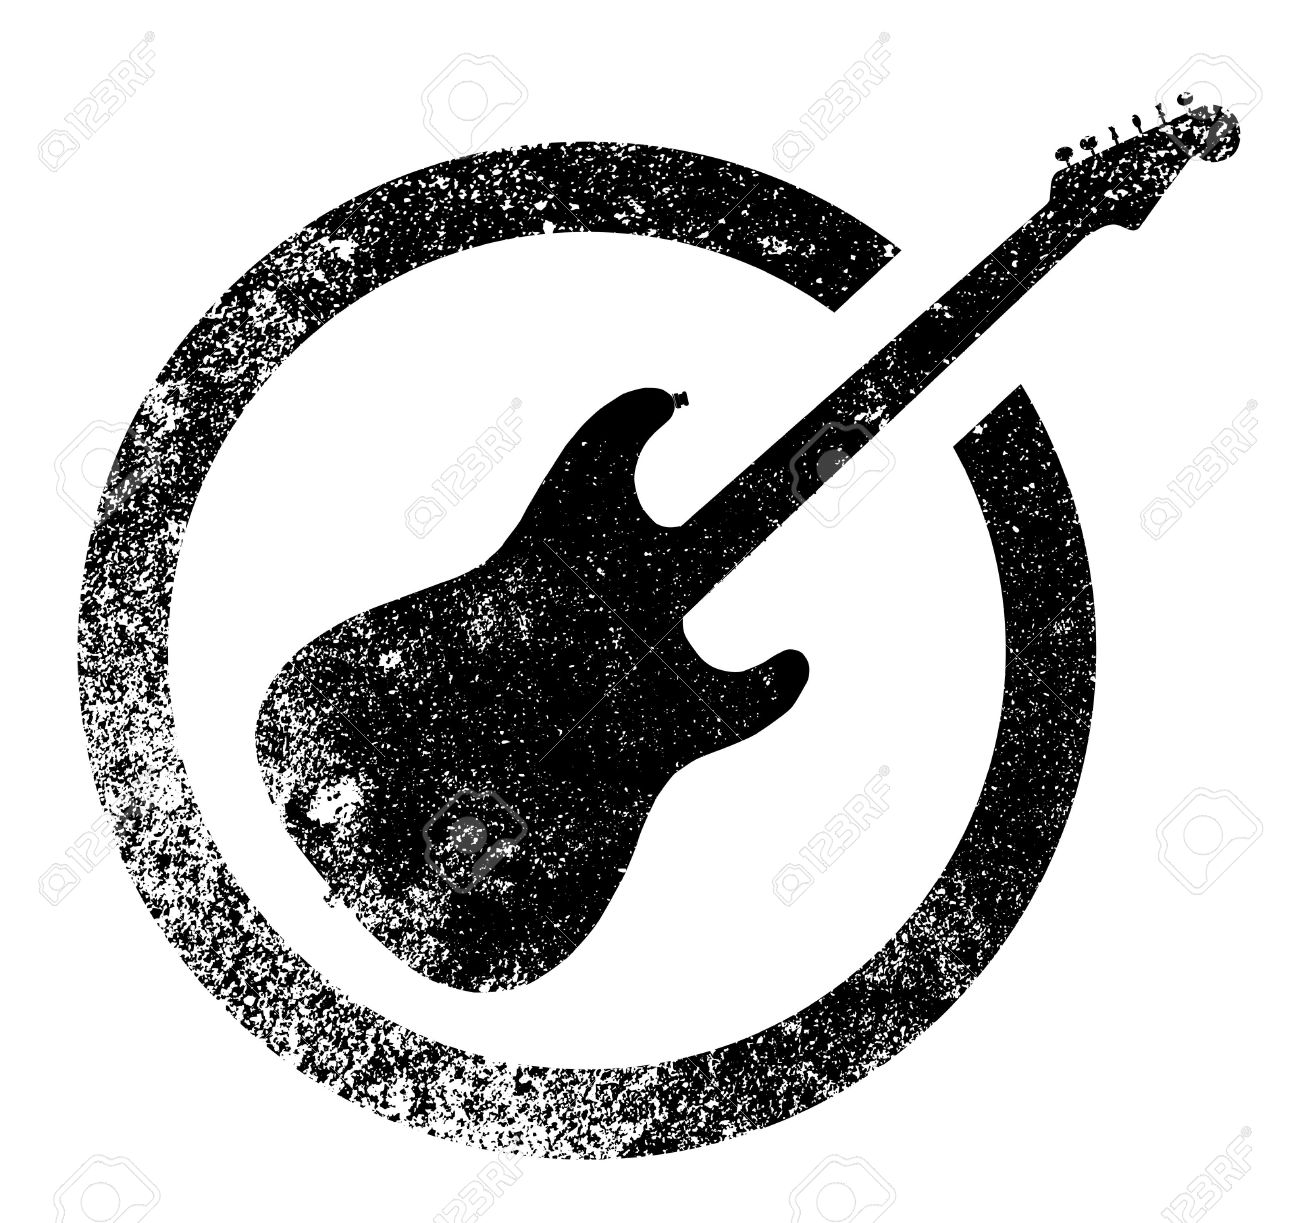 Rock And Roll Clipart Black And White.